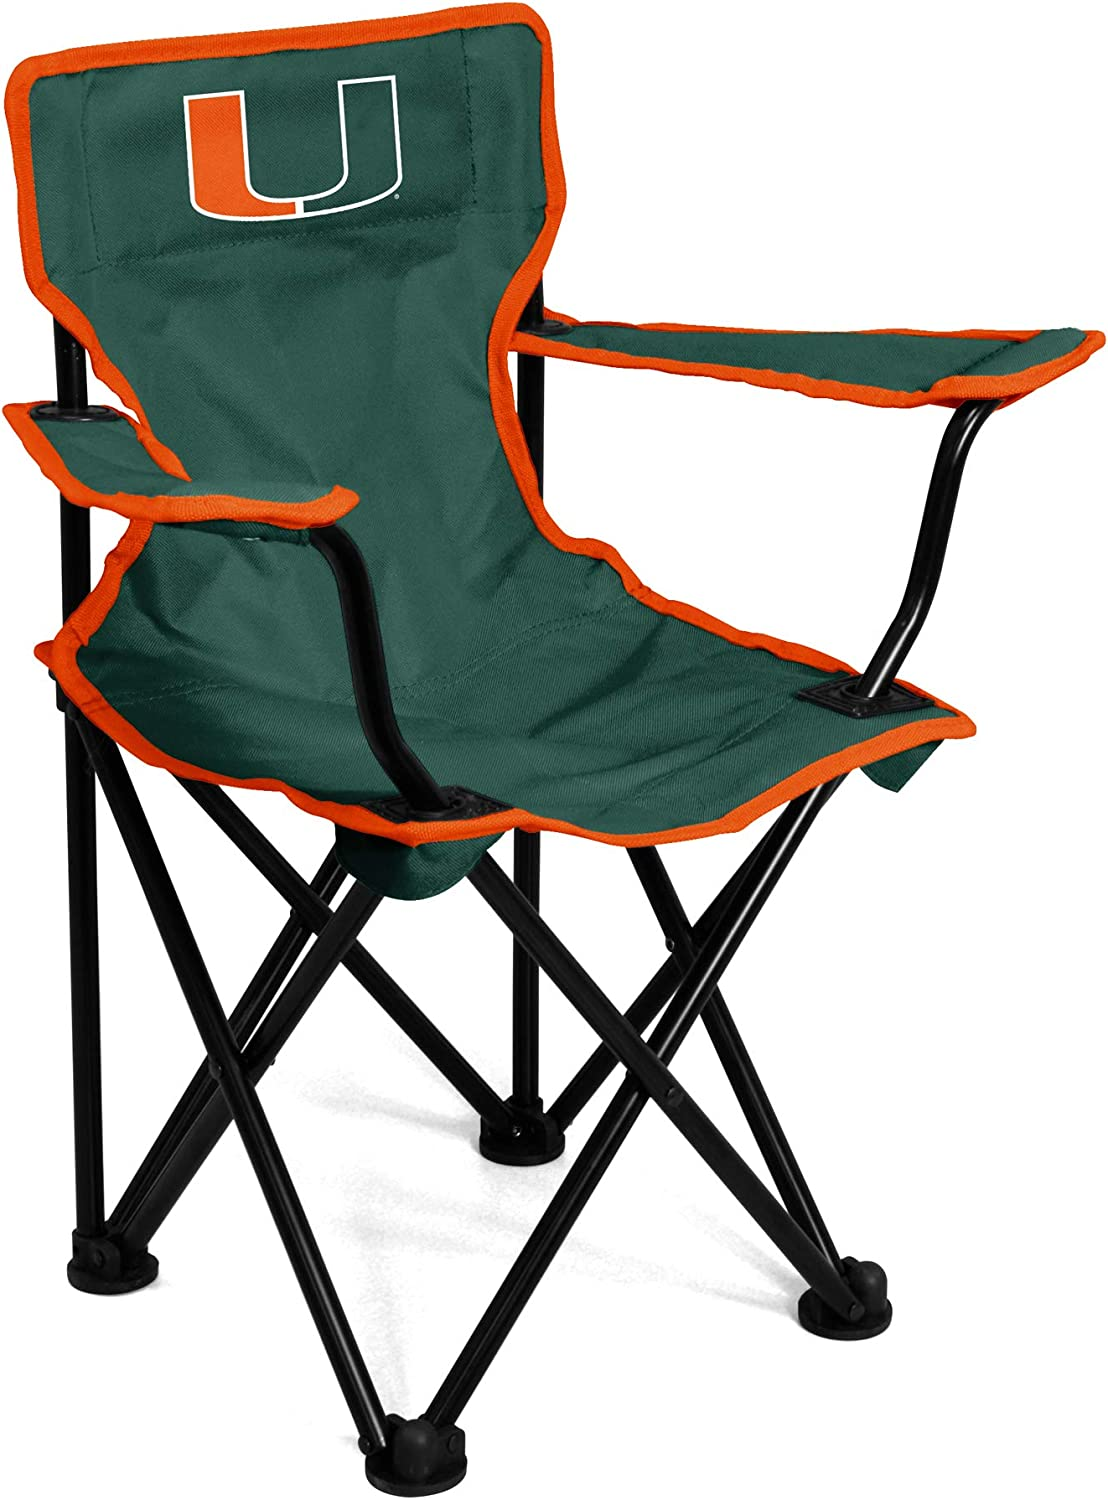 Logo Brands Officially Licensed NCAA Toddler Chair, One Size